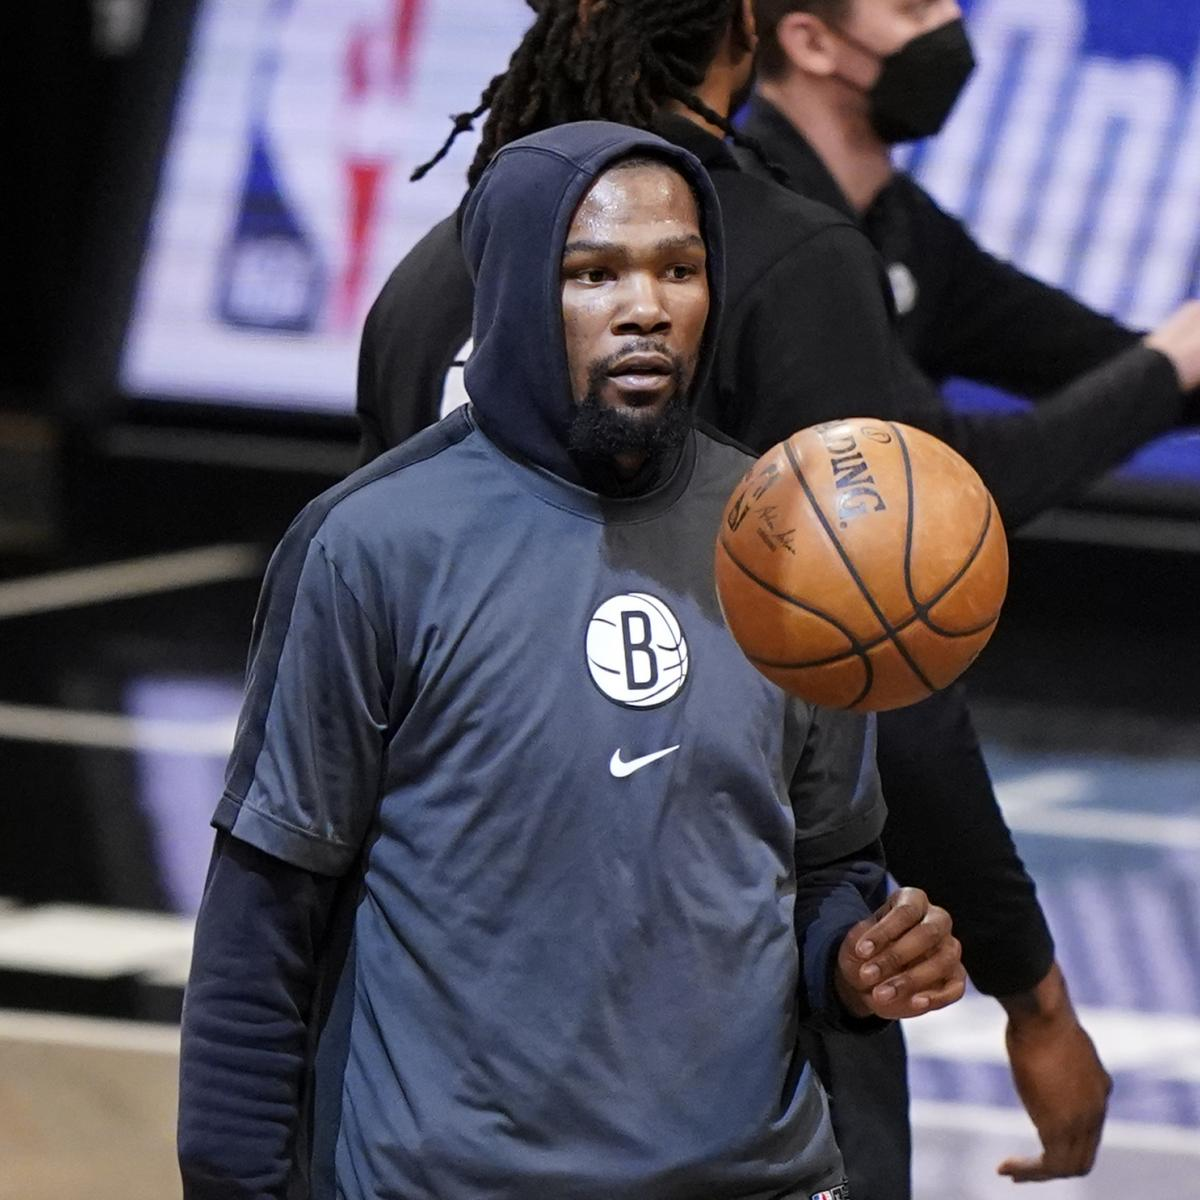 Kevin Durant, Mike Conley's 'Two Distant Strangers' Short Film Wins Oscar thumbnail